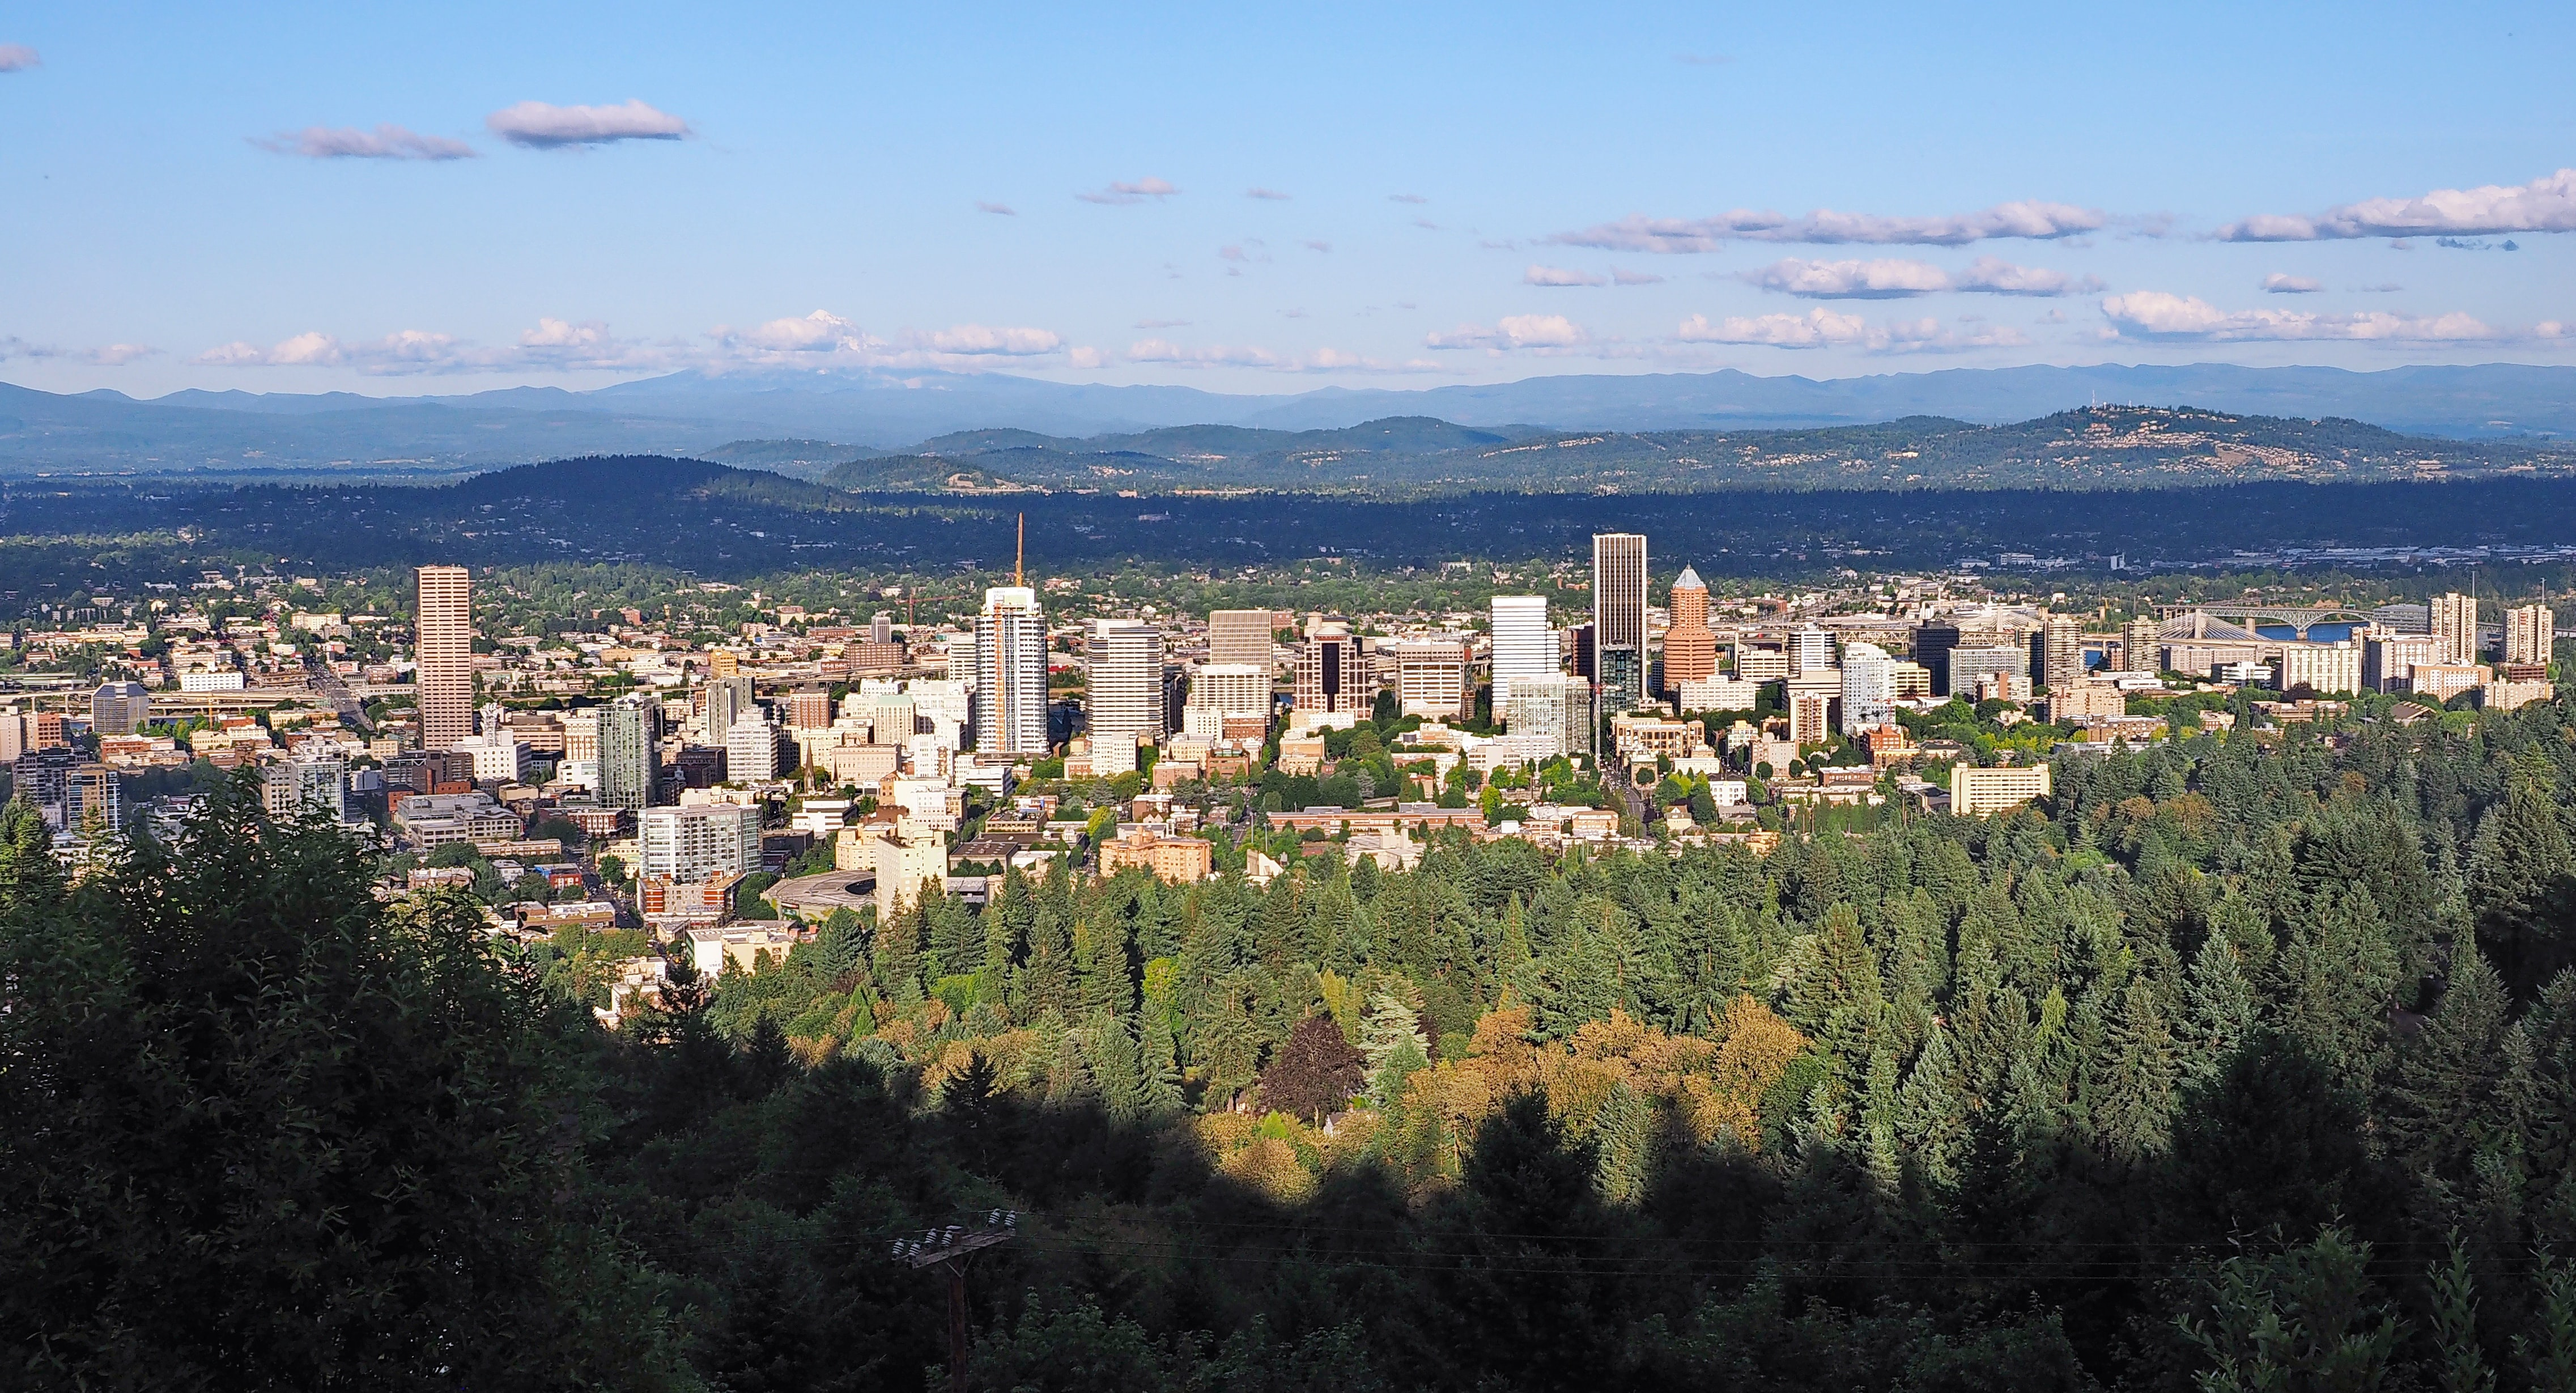 Beautiful view from the Pittock Mansion in Portland, Oregon.